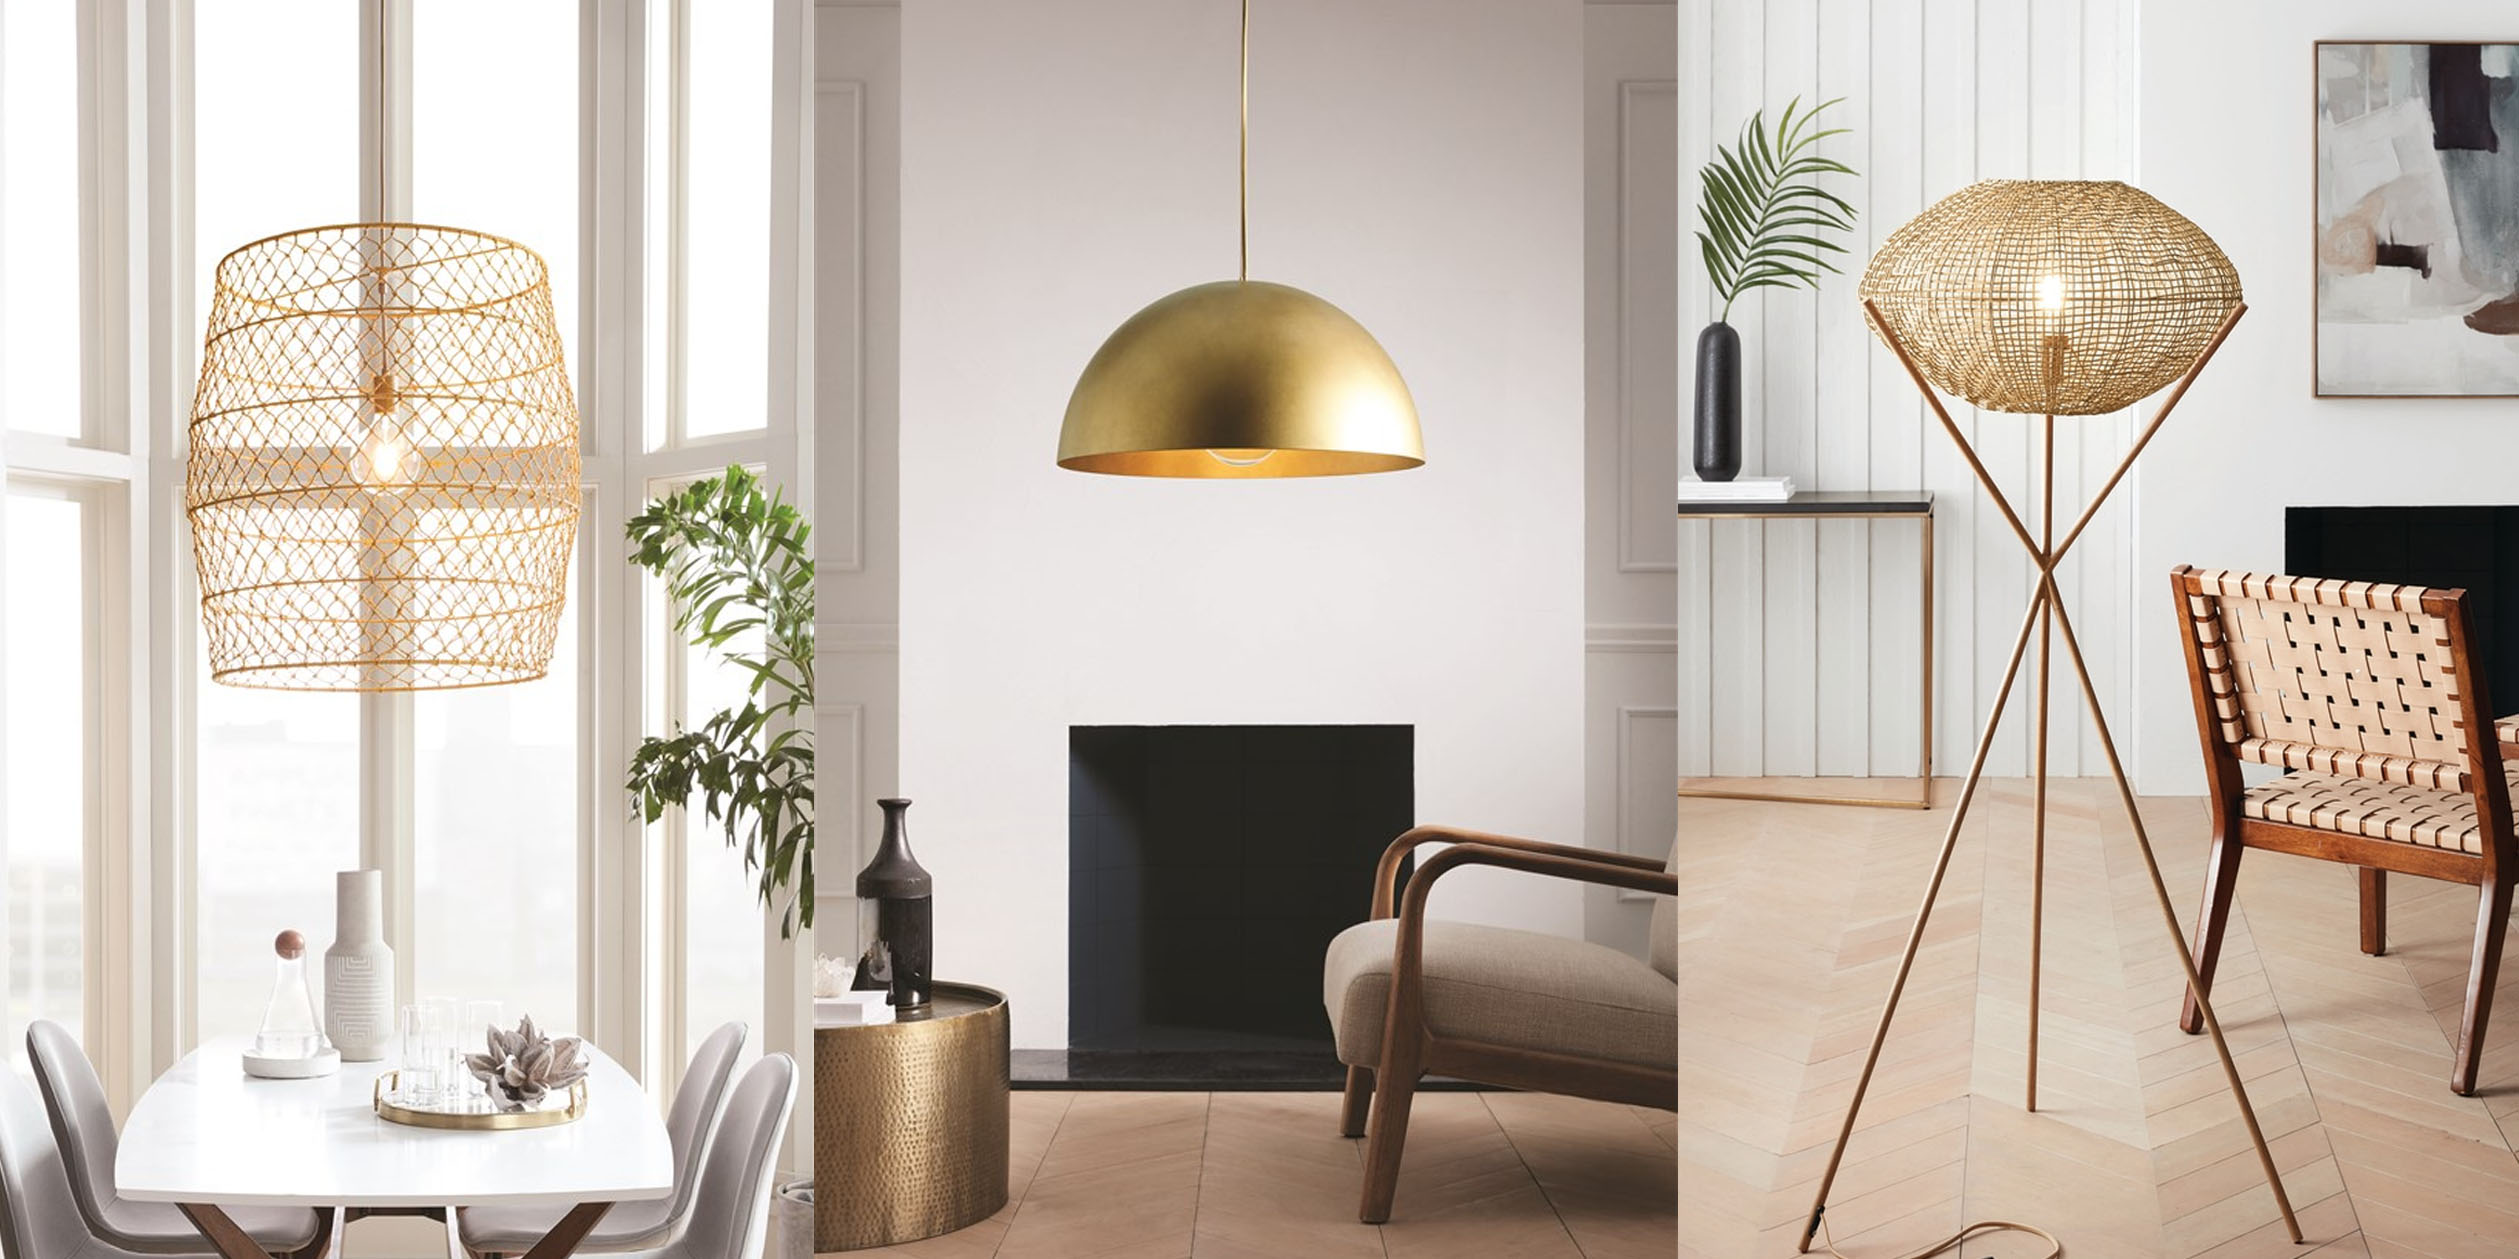 Target's new modern light collection collaborates with HGTV star Leanne Ford, deals from $30